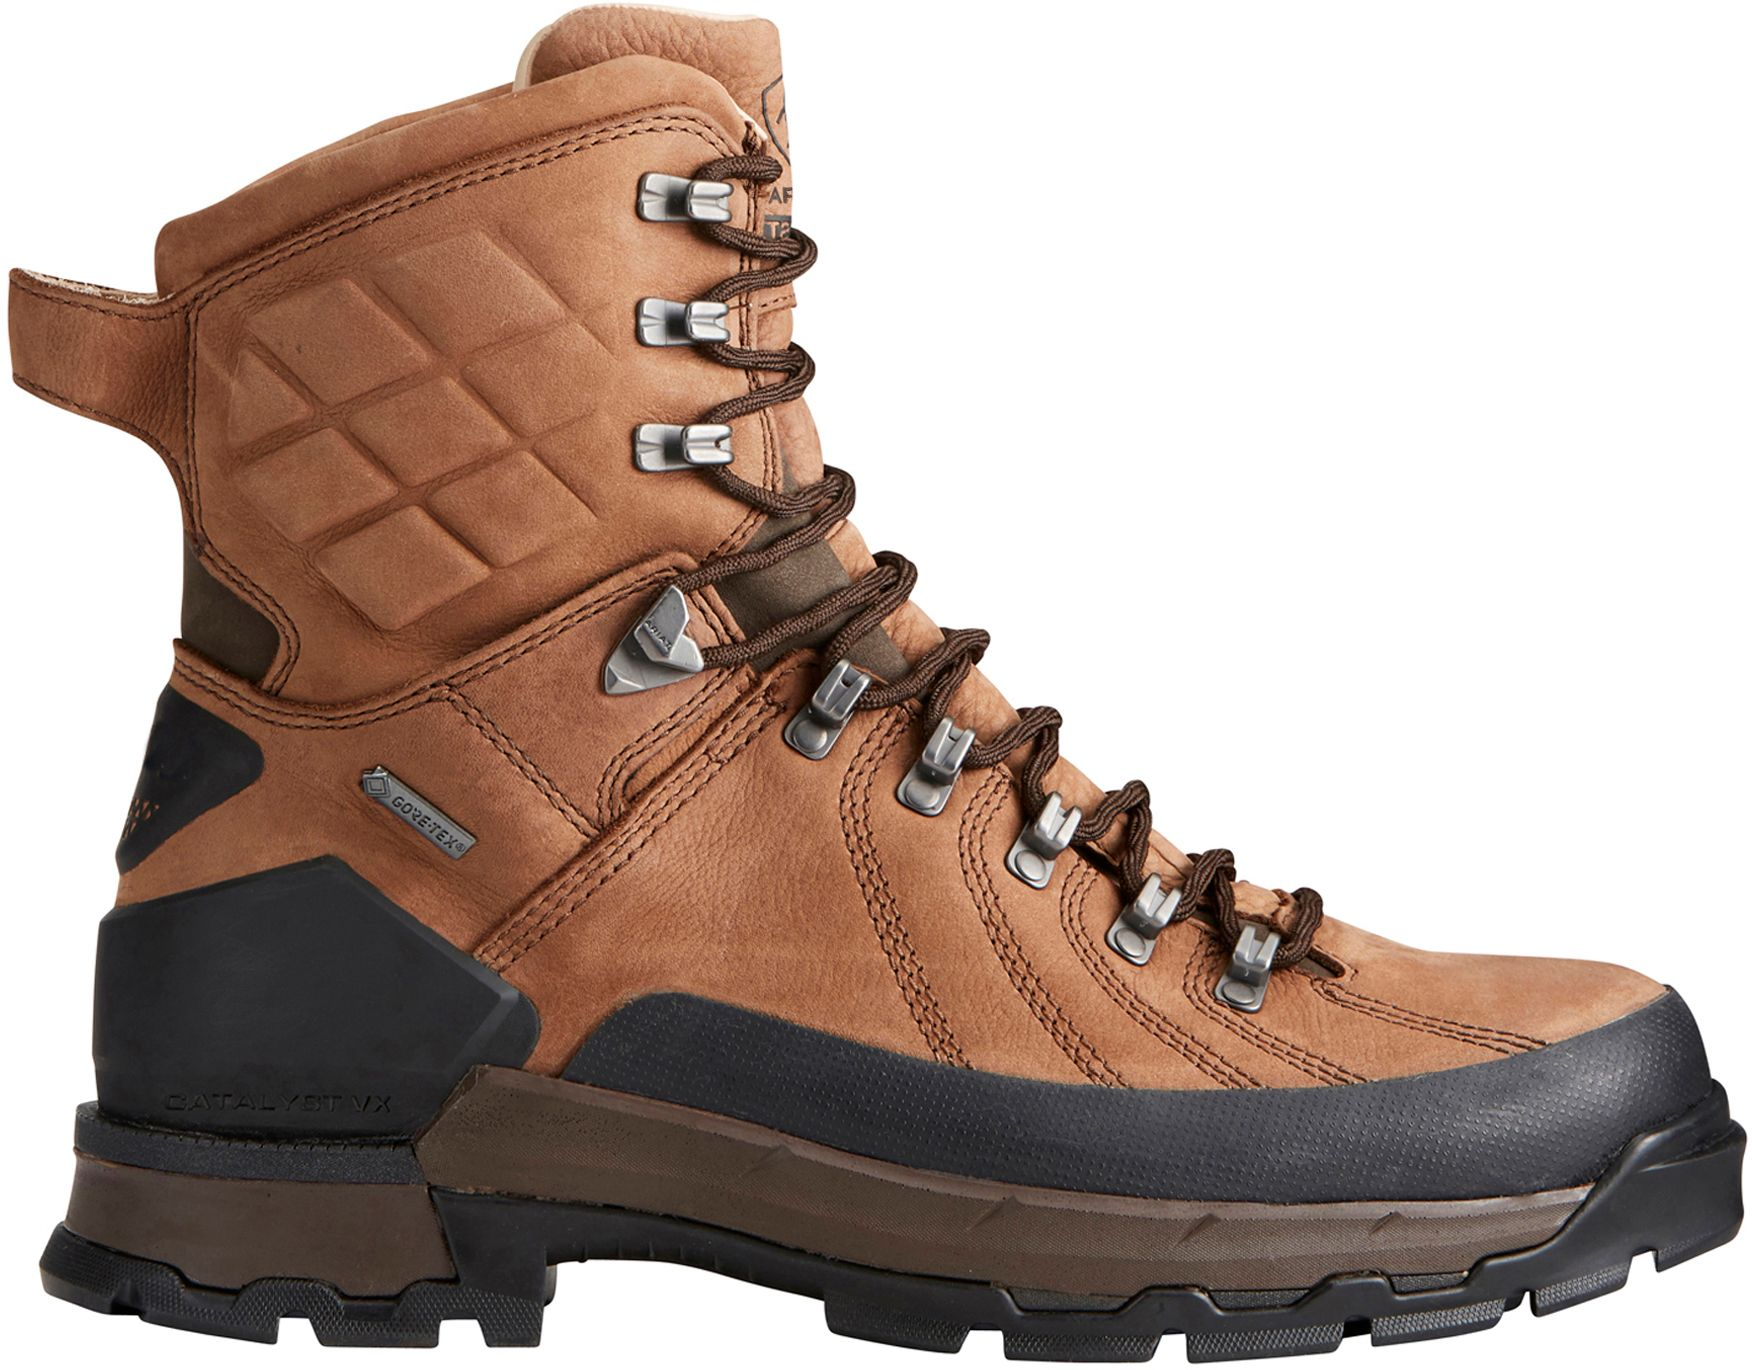 Ariat Men's Catalyst Defiant 8'' GORE-TEX Field Hunting Boots, Size: 8.0, Brown thumbnail